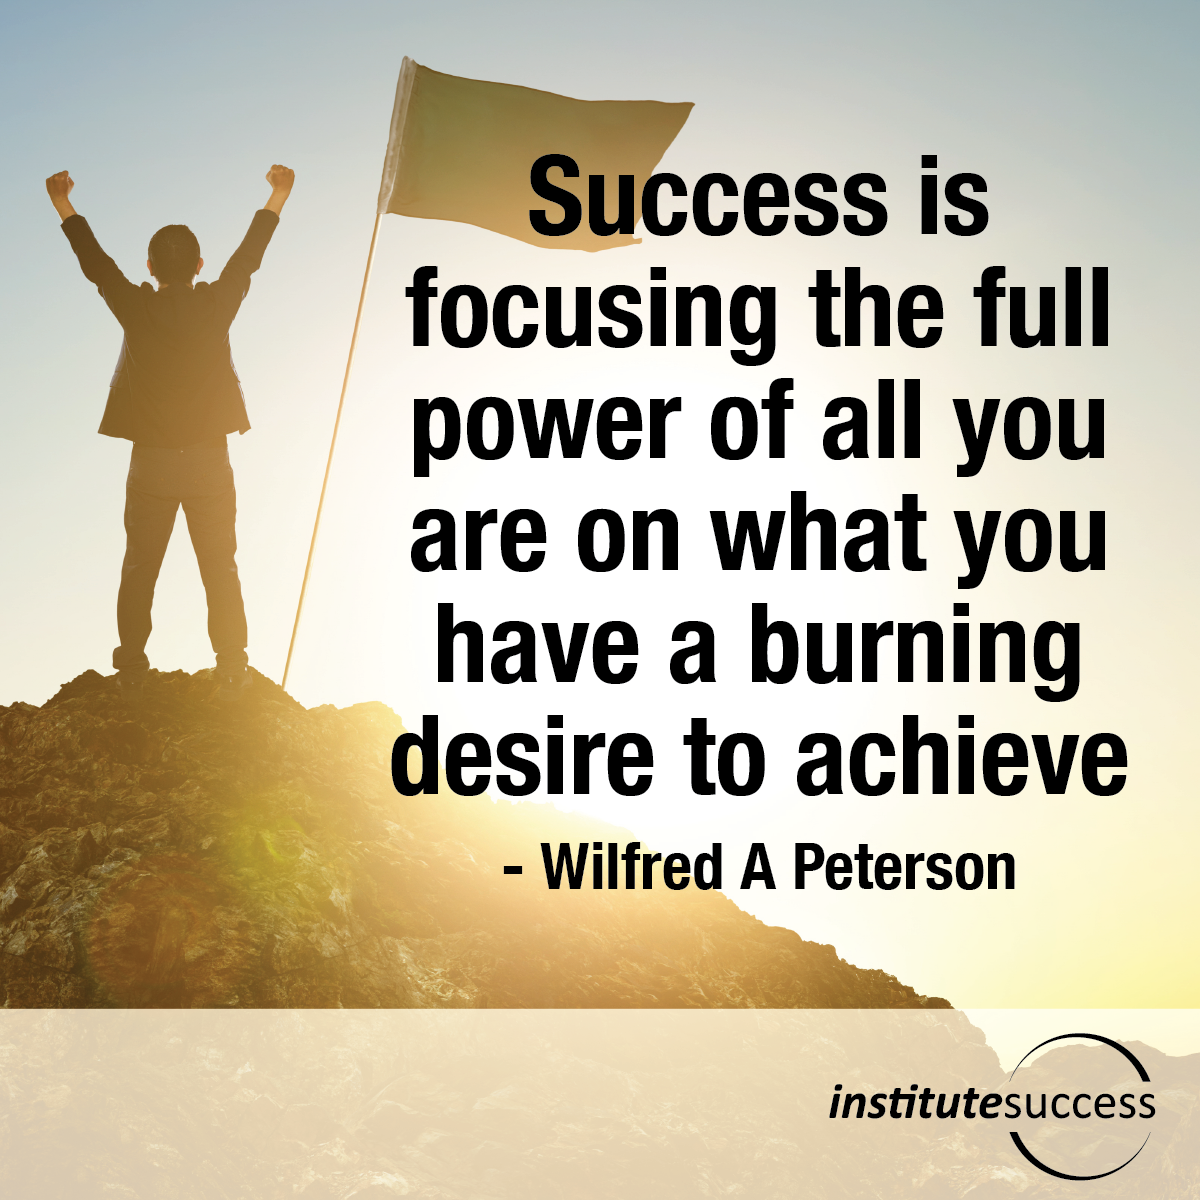 Success is focusing the full power of all you are on what you have a burning desire to achieve – Wilfred A Peterson